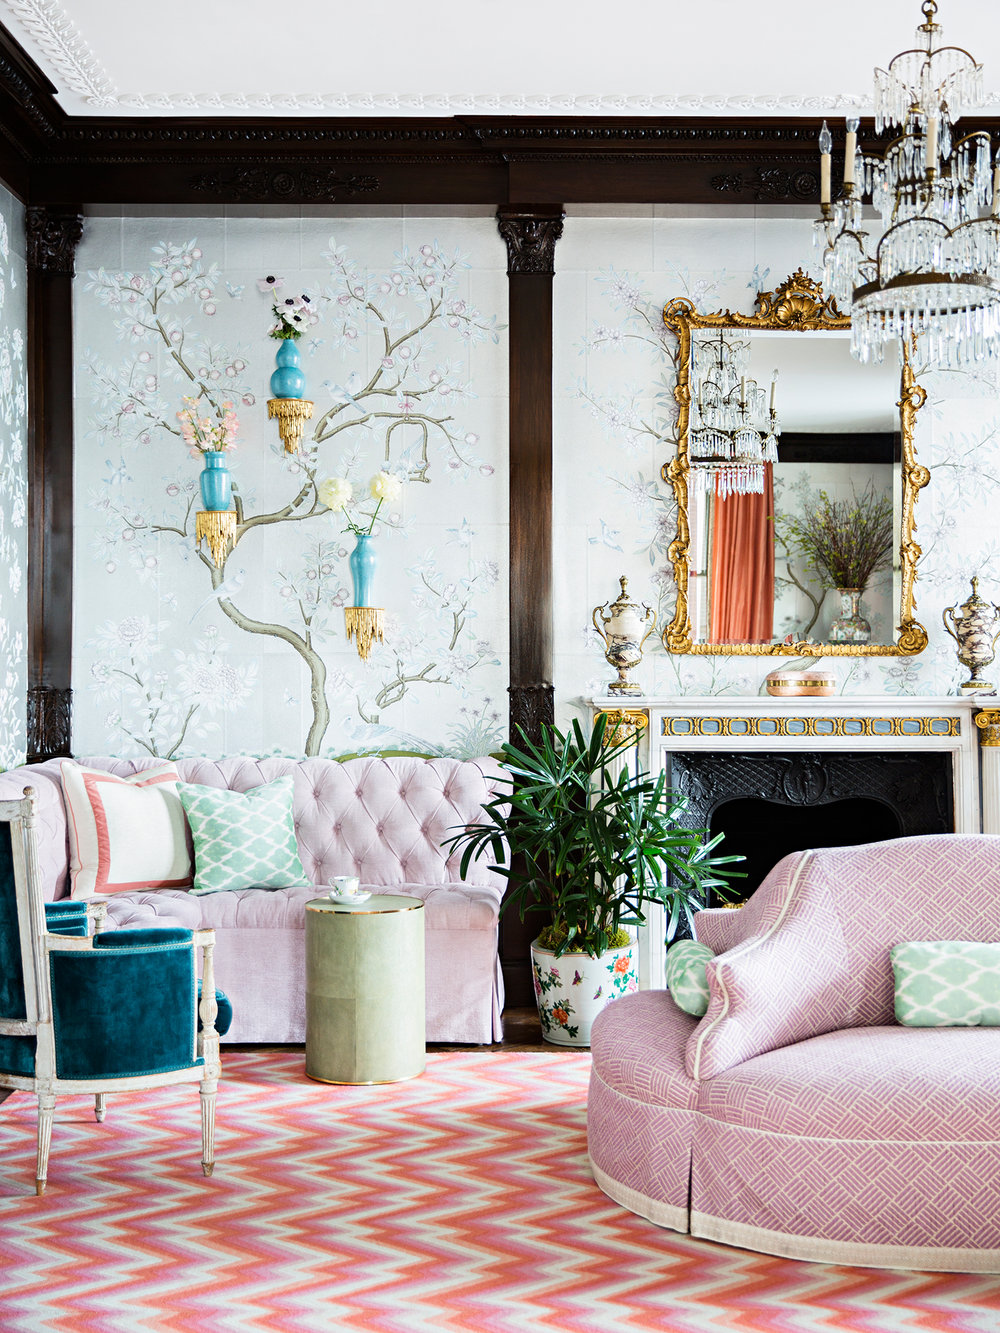 Interior Design by Celerie Kemble | Architectural Digest